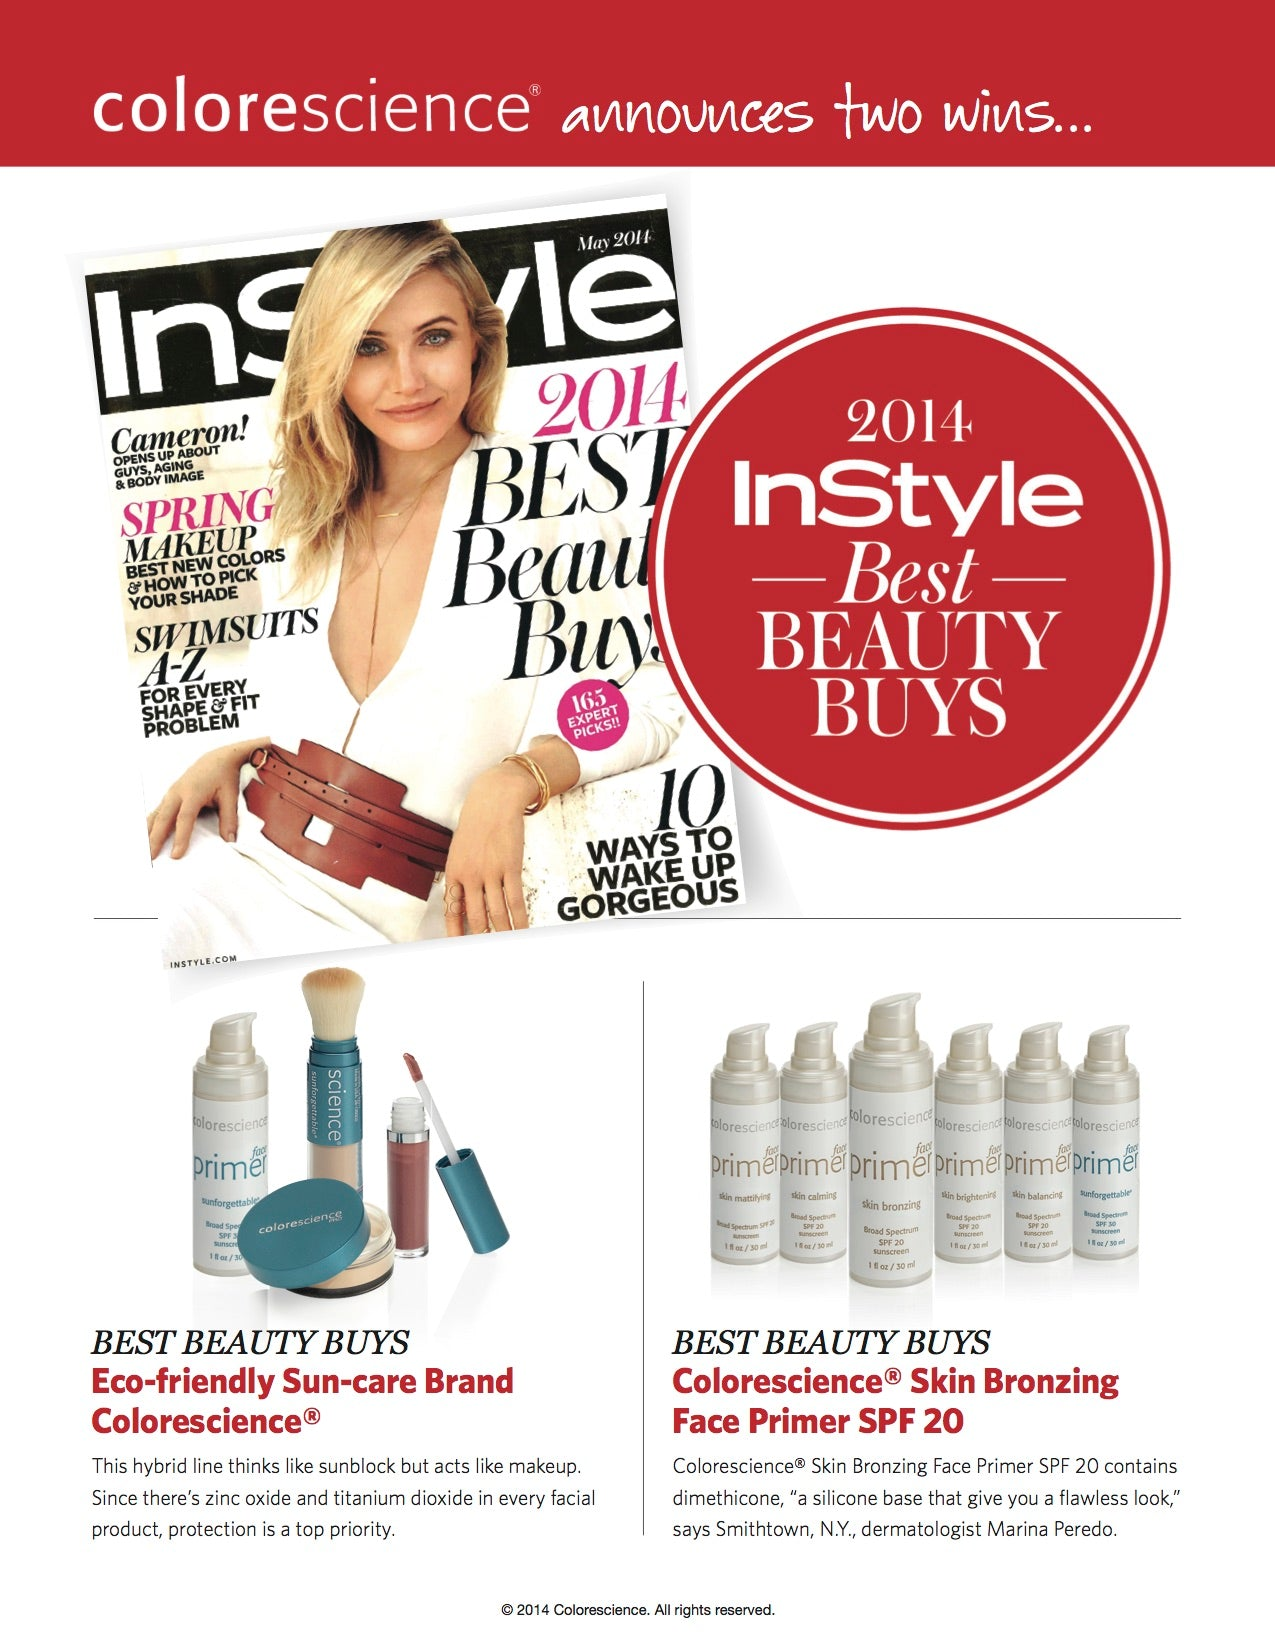 2014 InStyle Best Beauty Buys